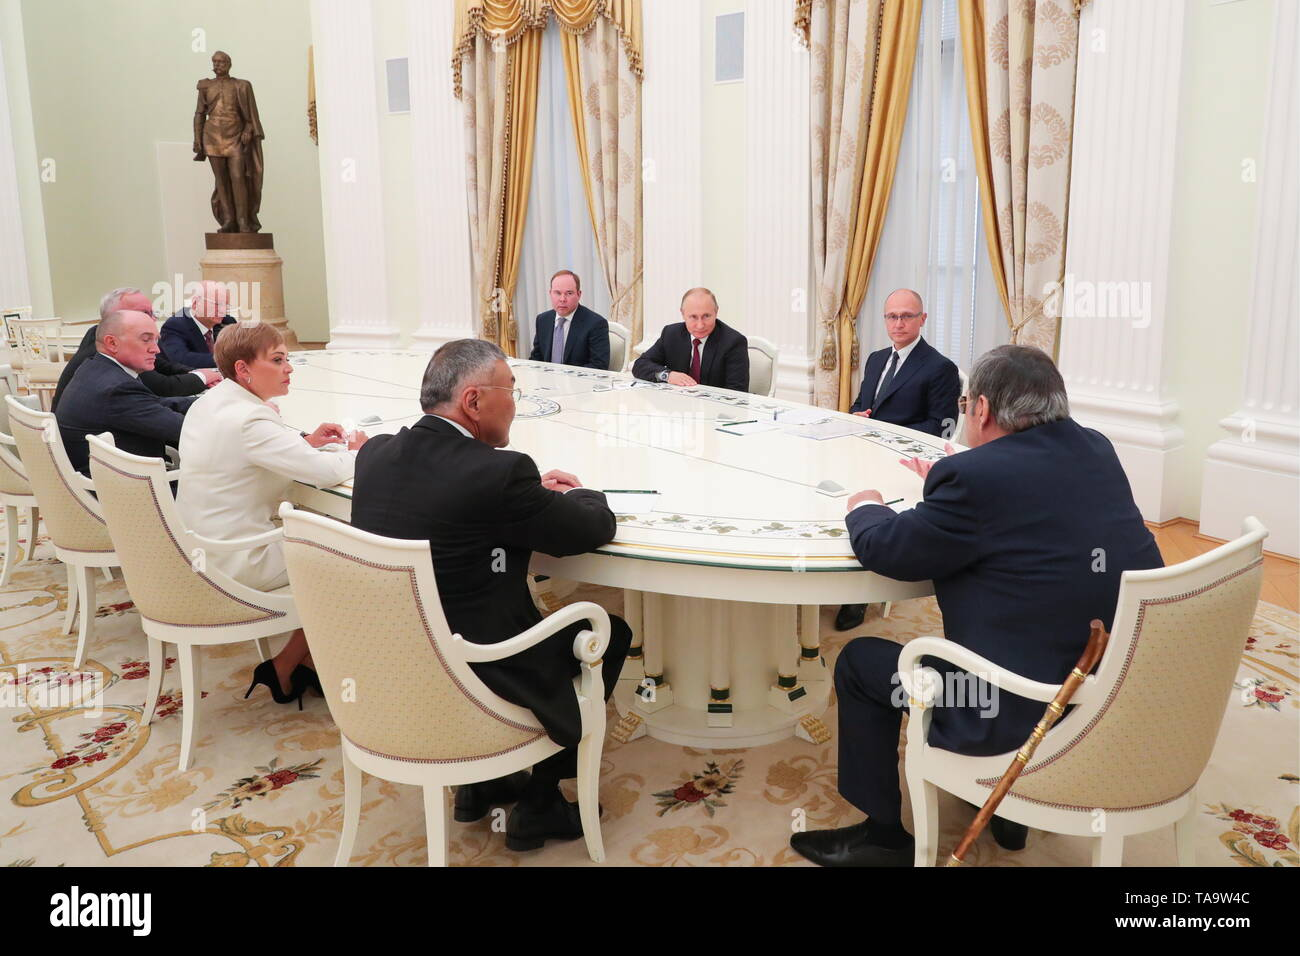 Moscow, Russia. 23rd May, 2019. MOSCOW, RUSSIA - MAY 23, 2019: Russia's President Vladimir Putin (C) during a meeting with former heads of Russian regions, at the Moscow Kremlin. Mikhail Klimentyev/Russian Presidential Press and Information Office/TASS Credit: ITAR-TASS News Agency/Alamy Live News - Stock Image